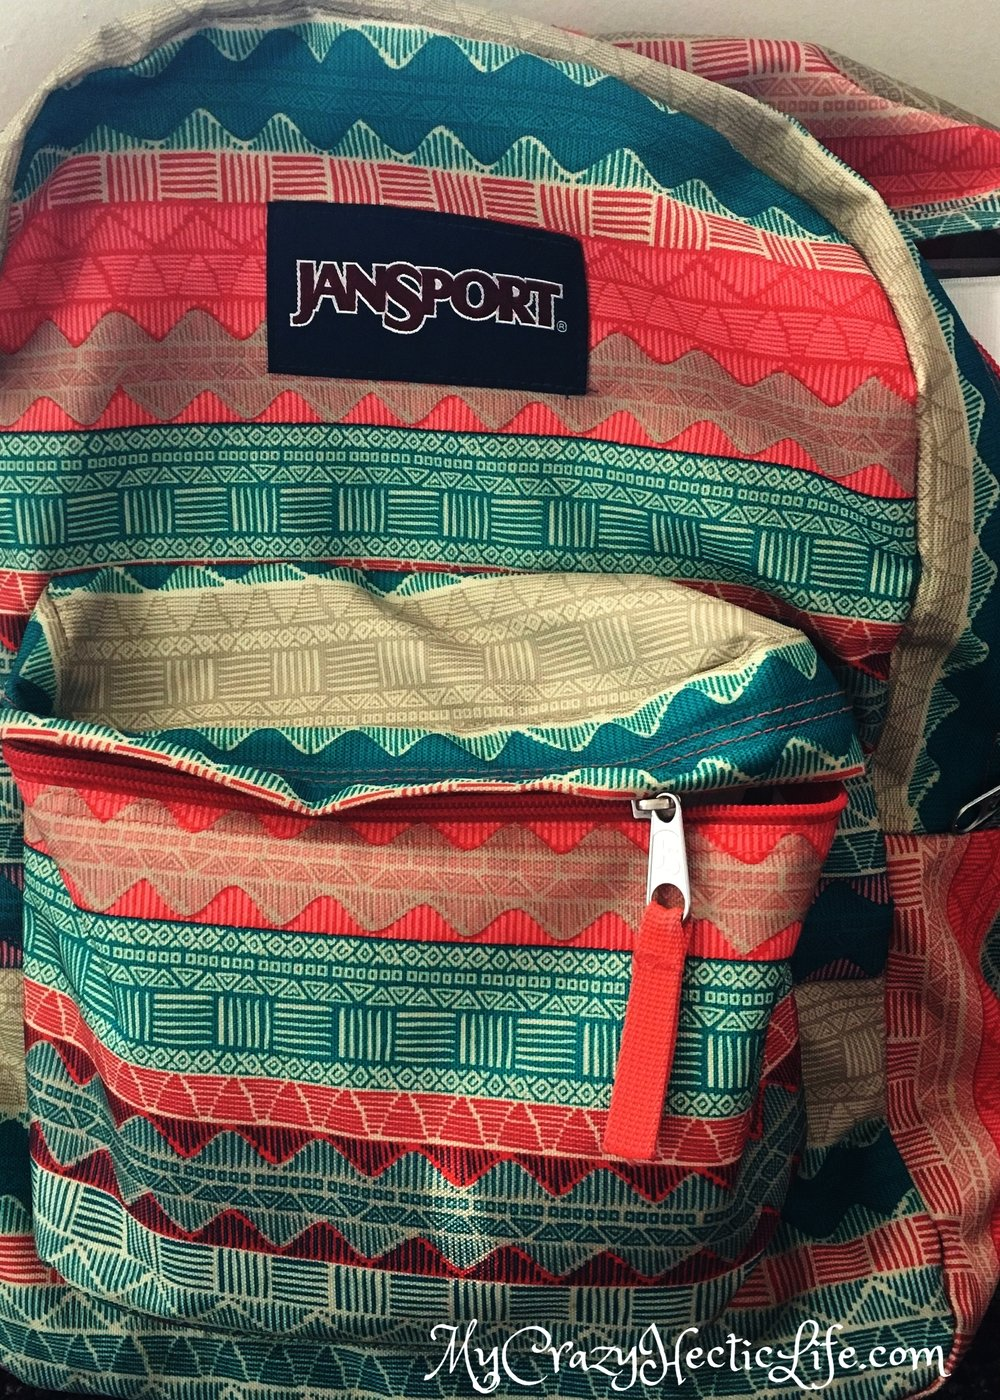 I use a Jansport super break backpack everyday!